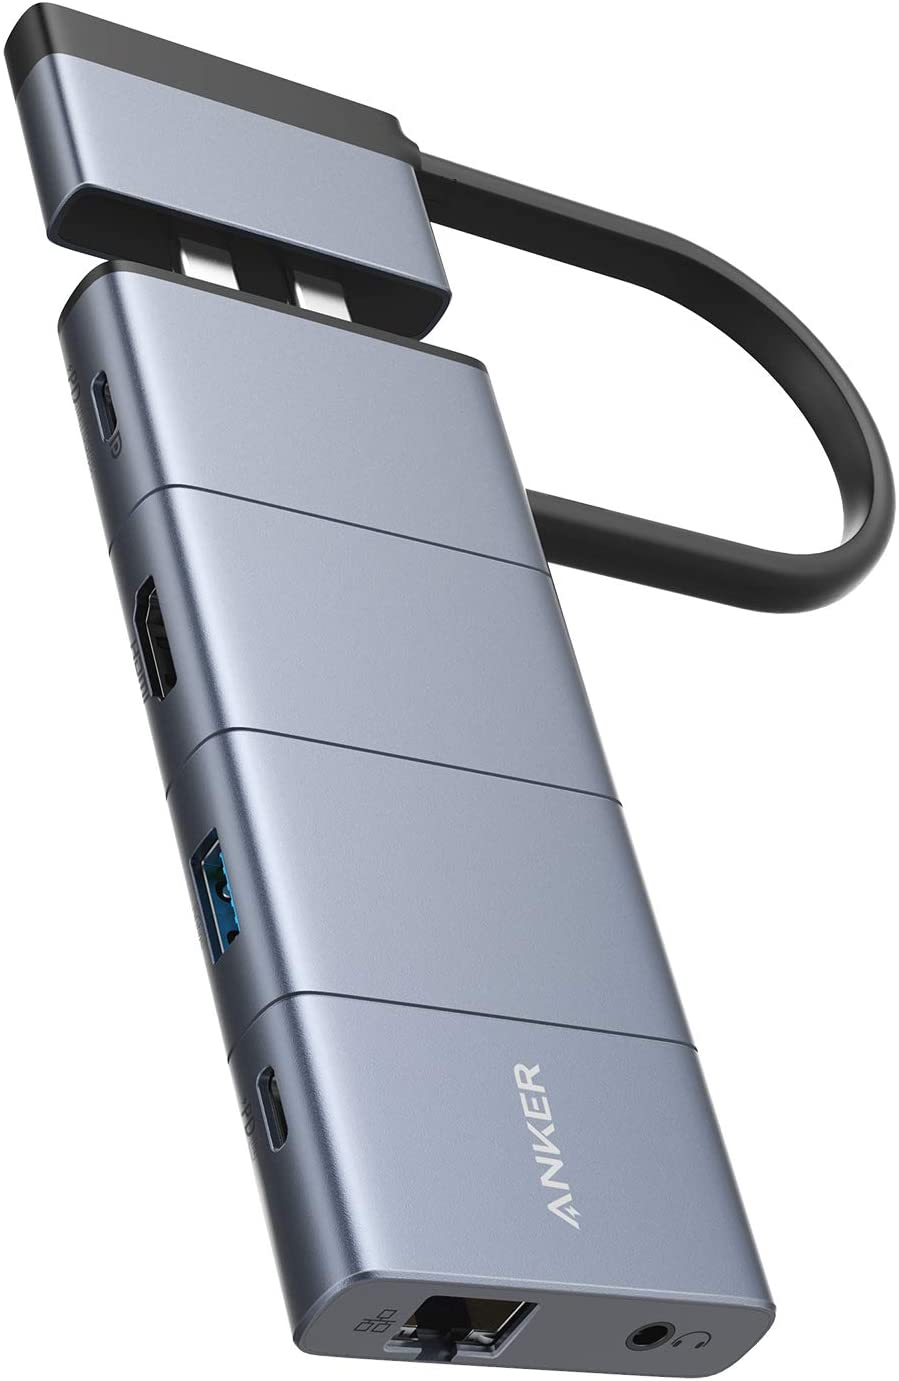 Anker PowerExpand 9-in-2